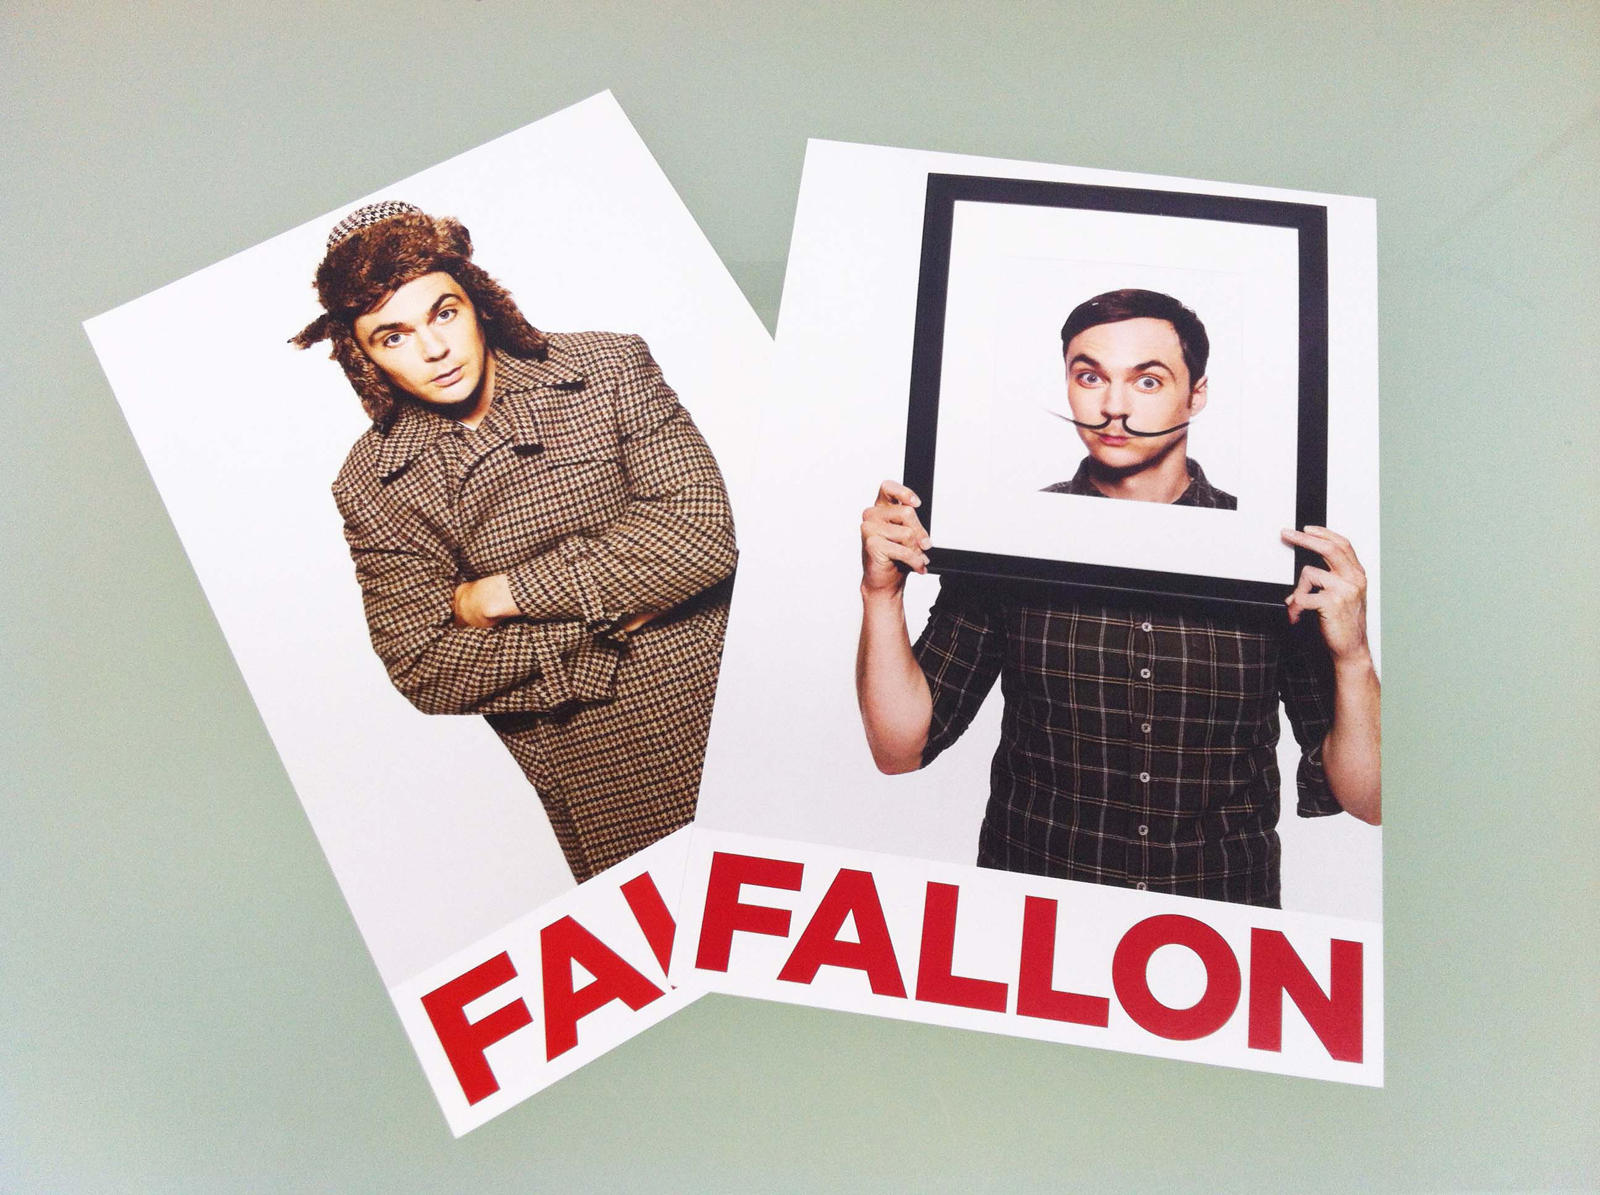 photographer promo of Aaron Fallon, based in Los Angeles, California. Jim Parsons from The Big Bang Thoery.